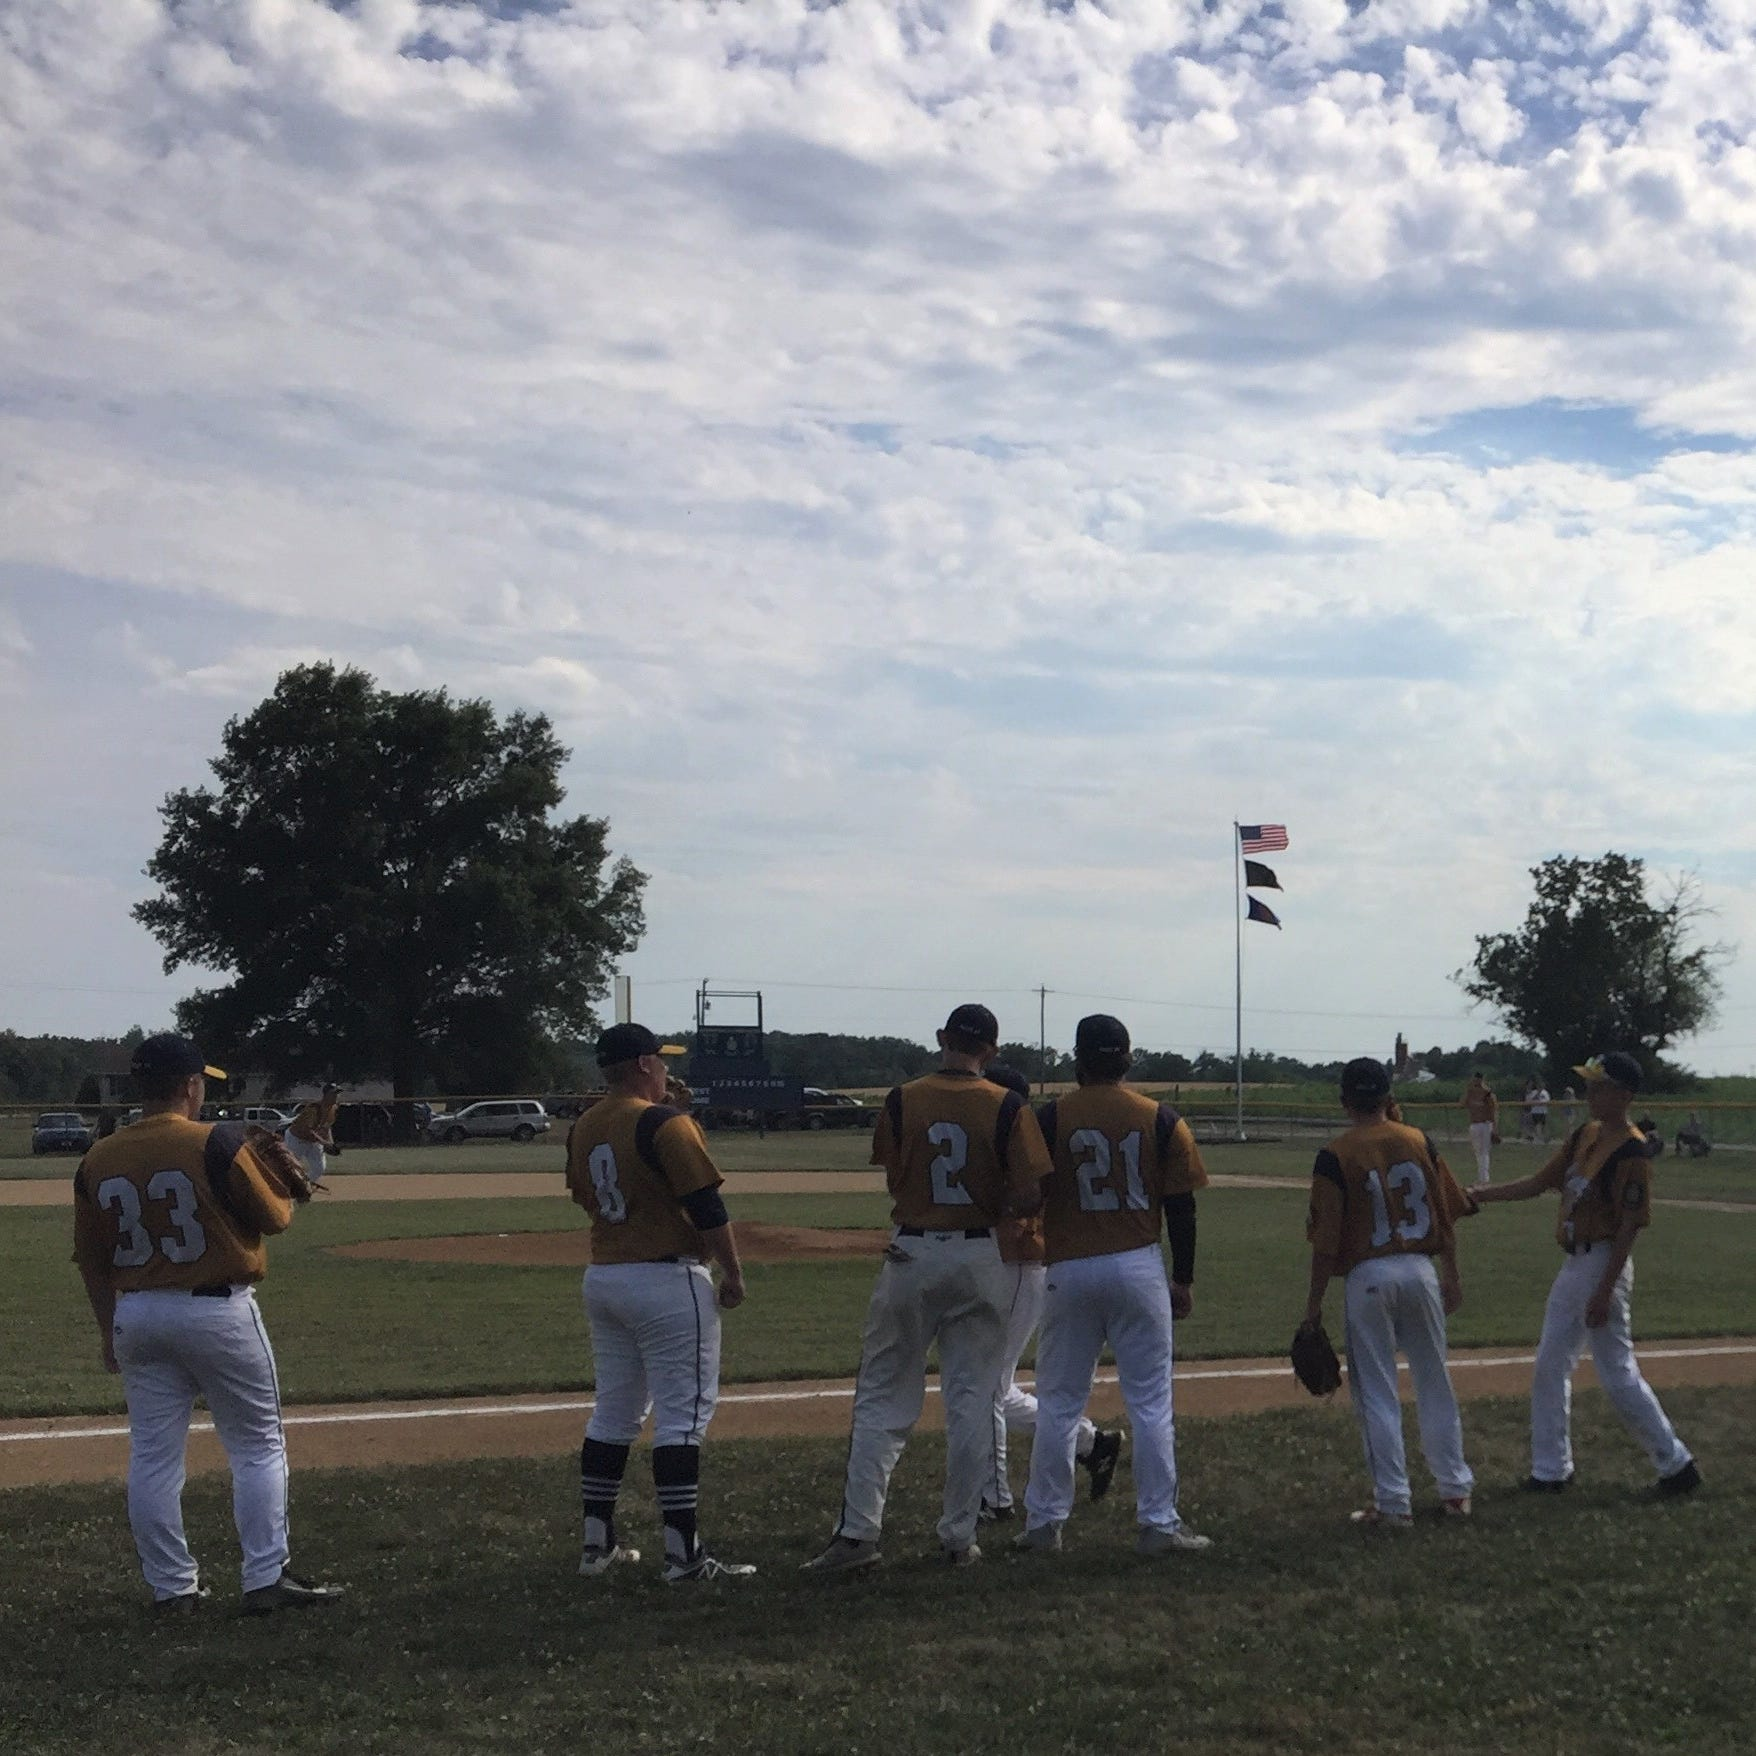 That hometown feeling: American Legion baseball still matters in Hanover